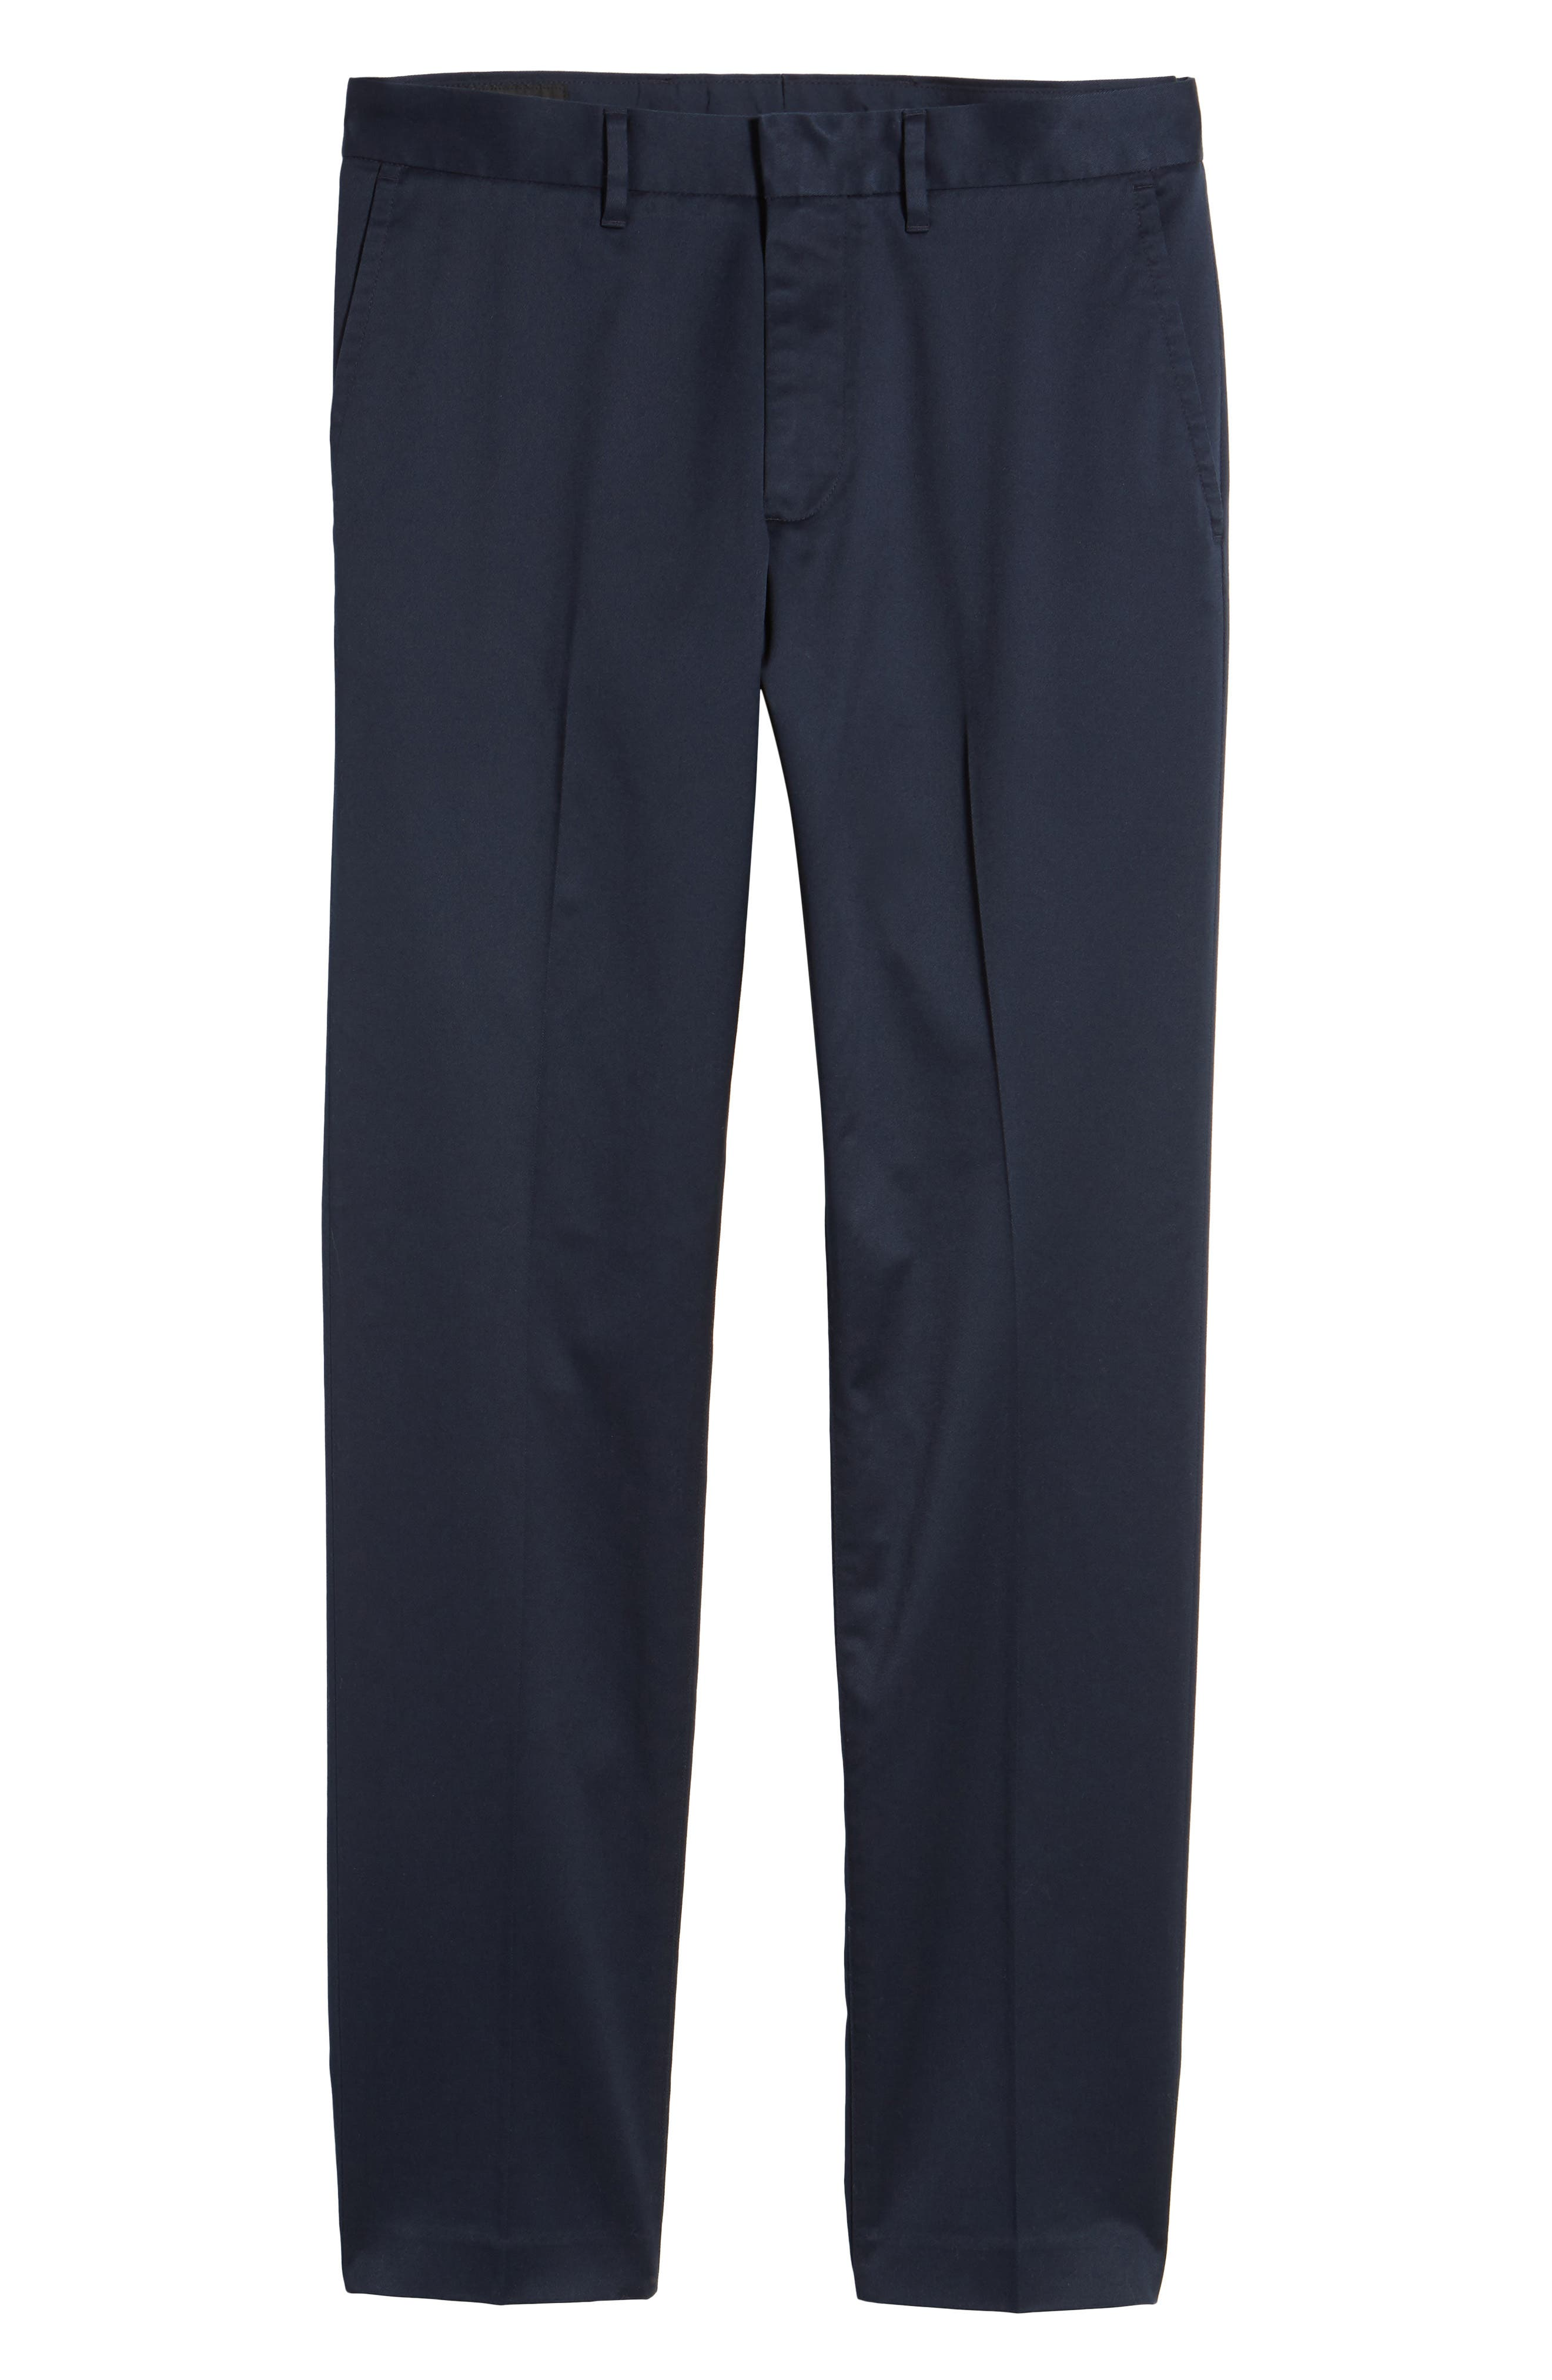 Slim Fit Non-Iron Chinos,                             Alternate thumbnail 6, color,                             Navy Eclipse